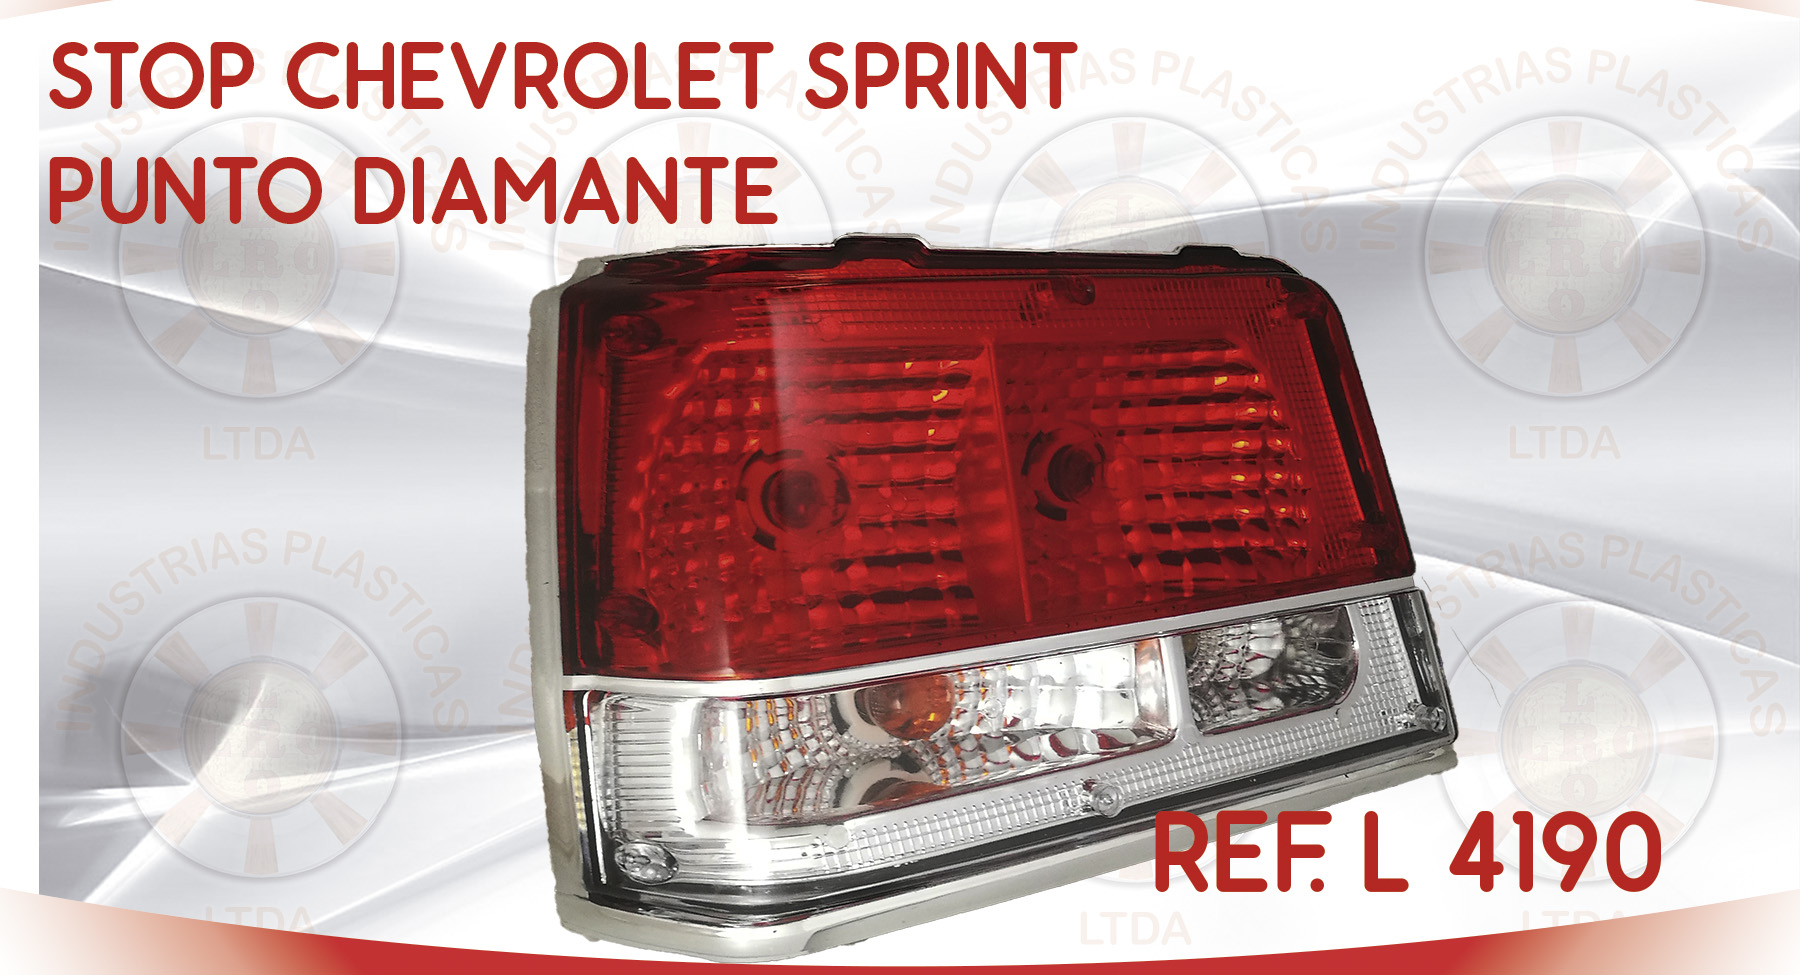 L 4190 STOP CHEVROLET SPRINT PUNTO DIAMANTE